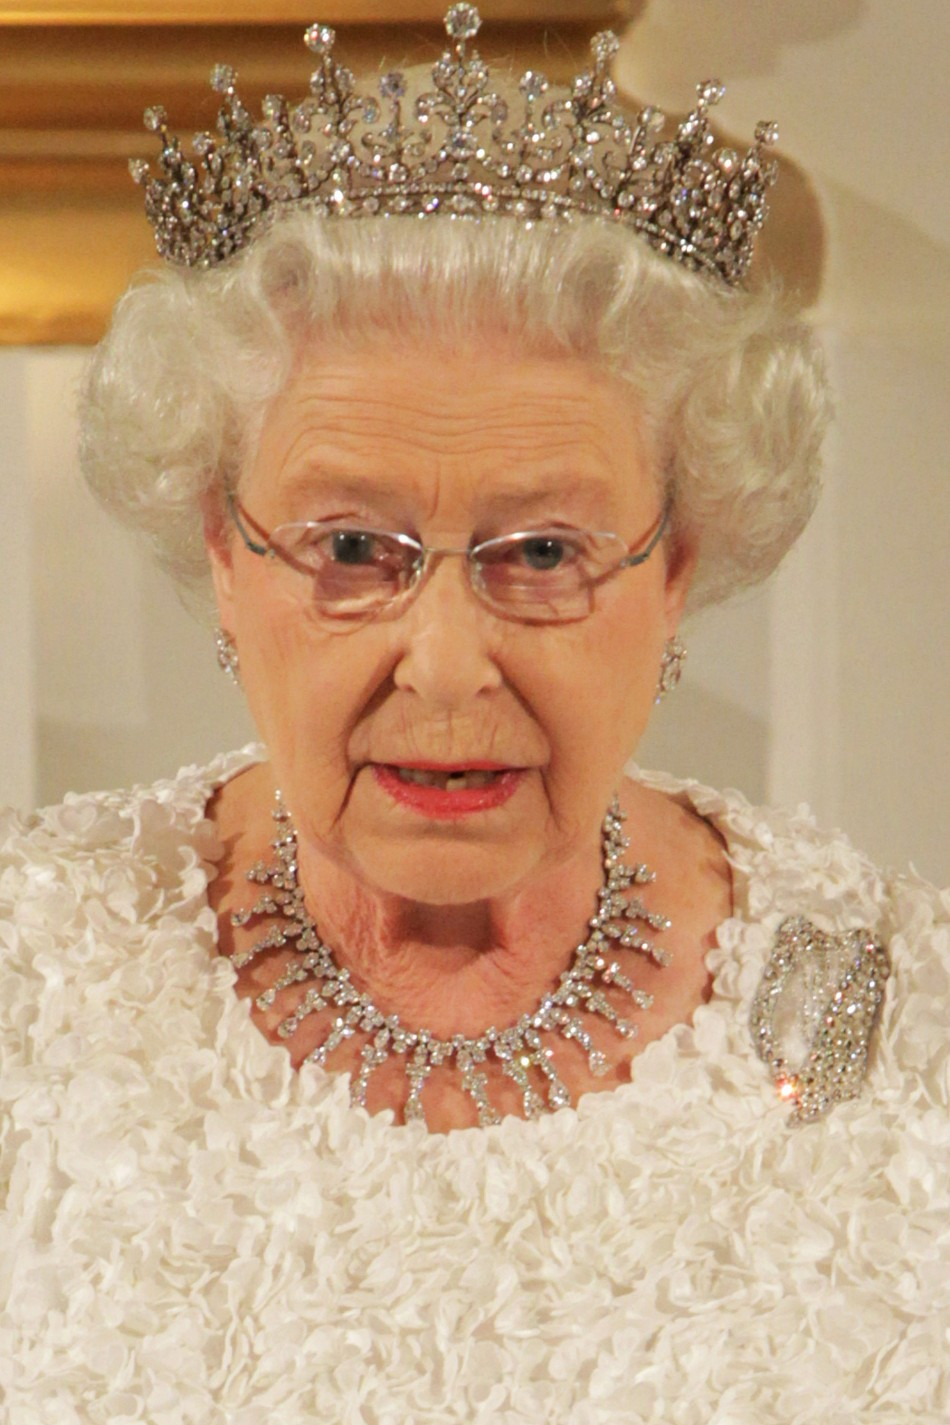 The Queen said that quotwe can all see things which we wish had been done differently or not at allquot and offered quotdeep sympathyquot in her banquet speech in Dublin Castle last night, but stopped short of an apology.